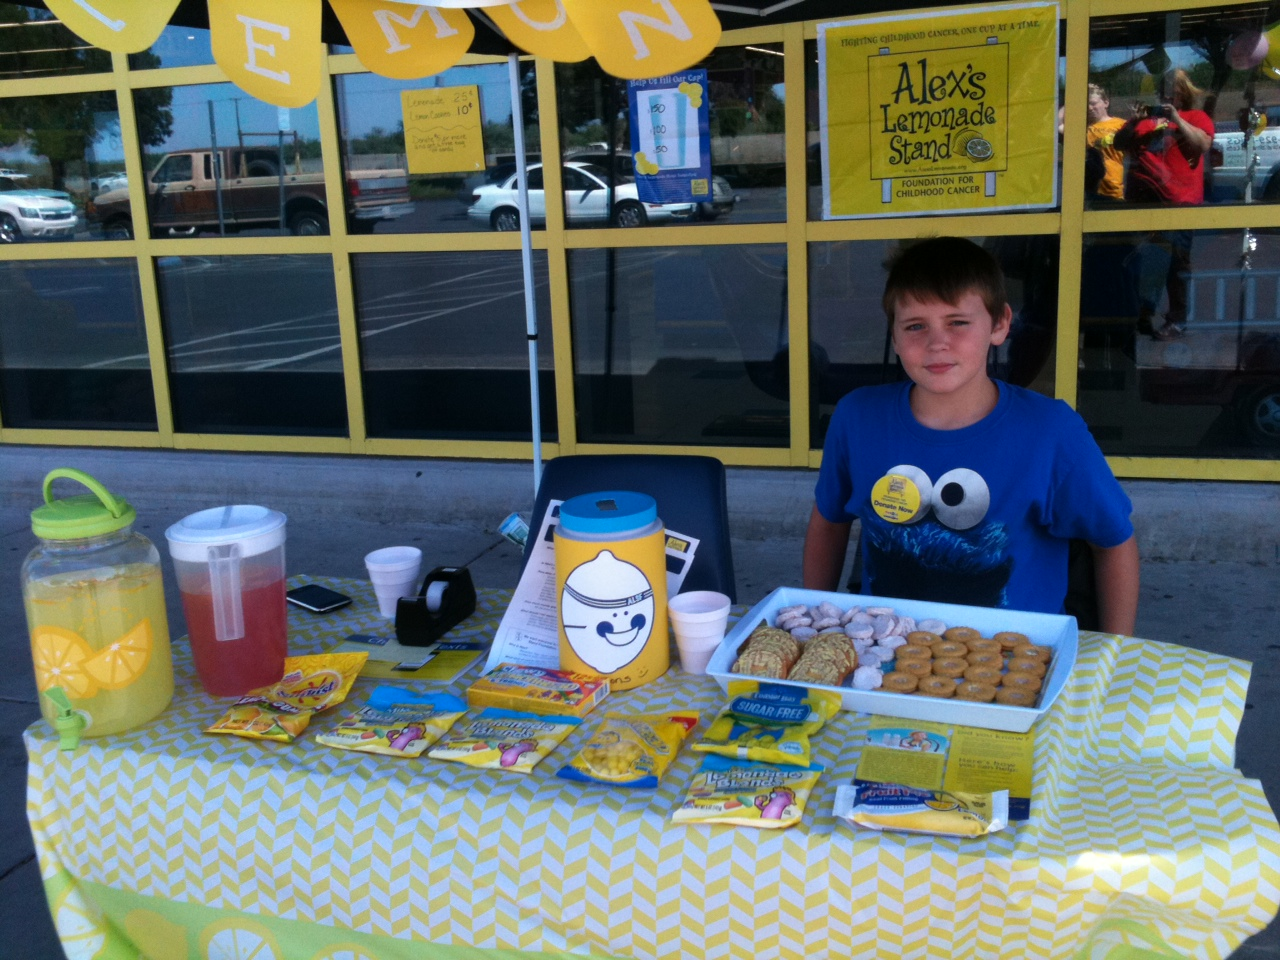 Toys R Us Lemonade Stand : Toys quot r us alex s lemonade stand foundation for